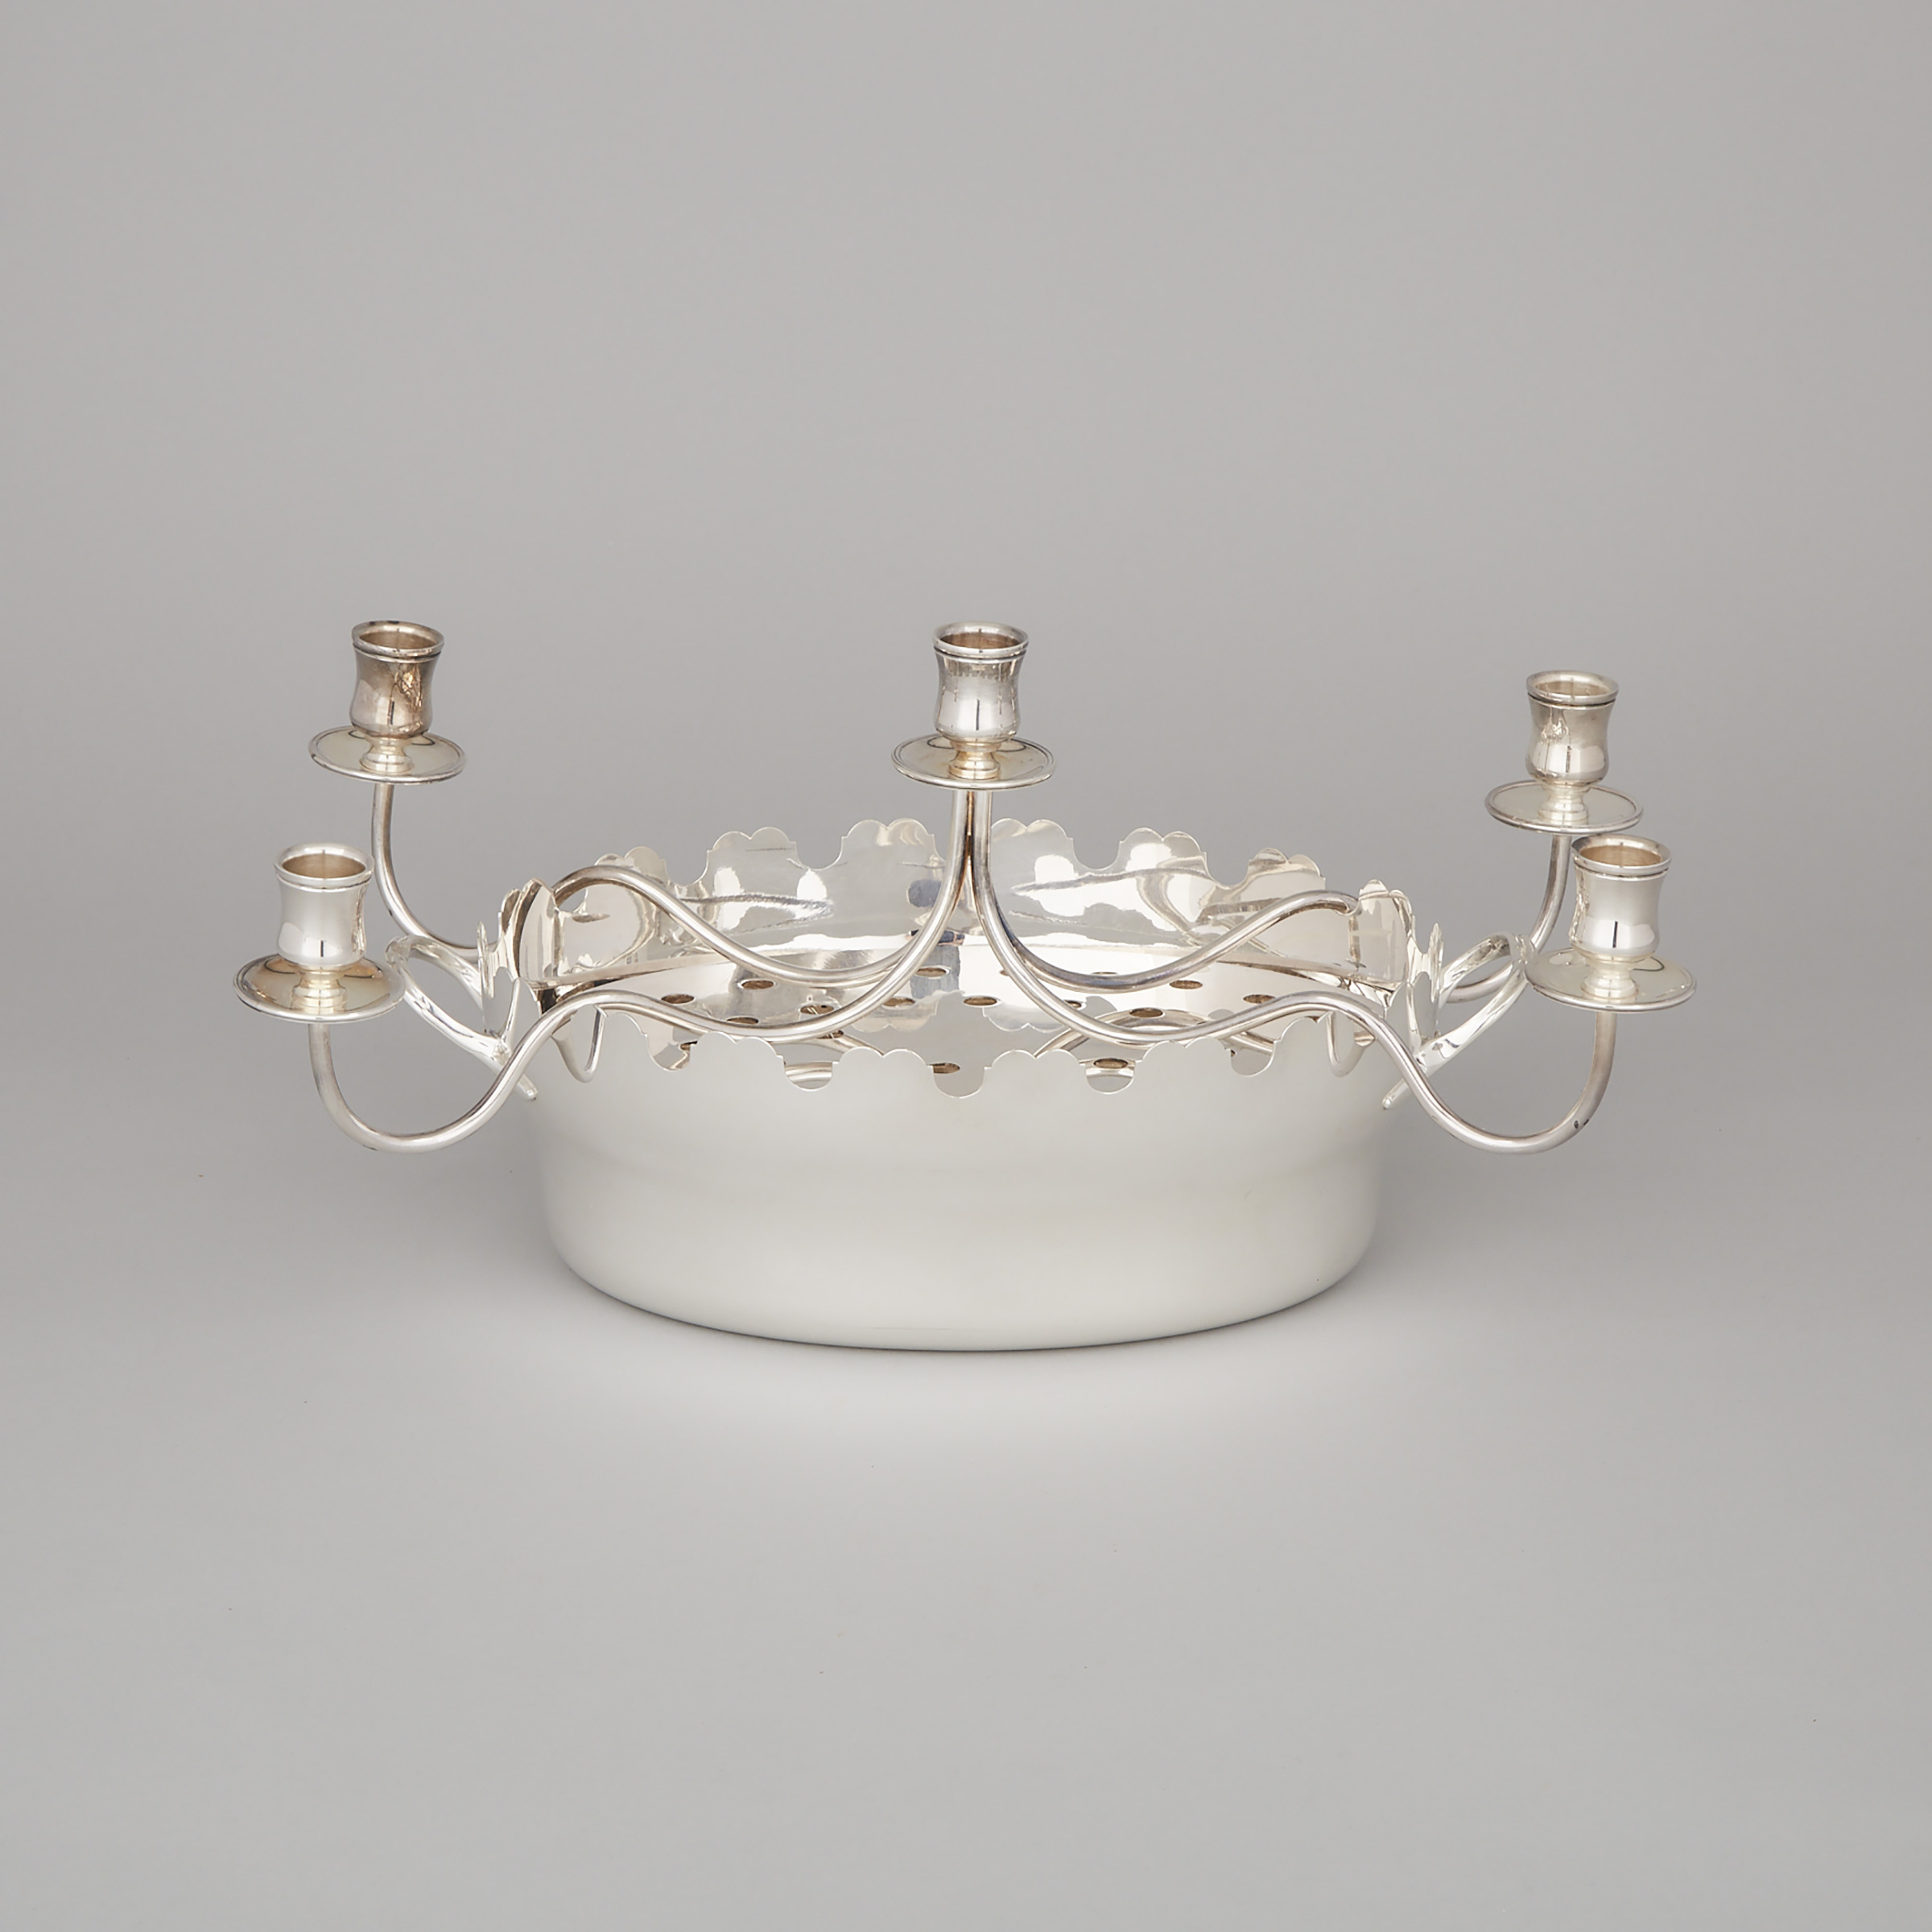 French Silver Plated Centrepiece with Candelabra, 20th century